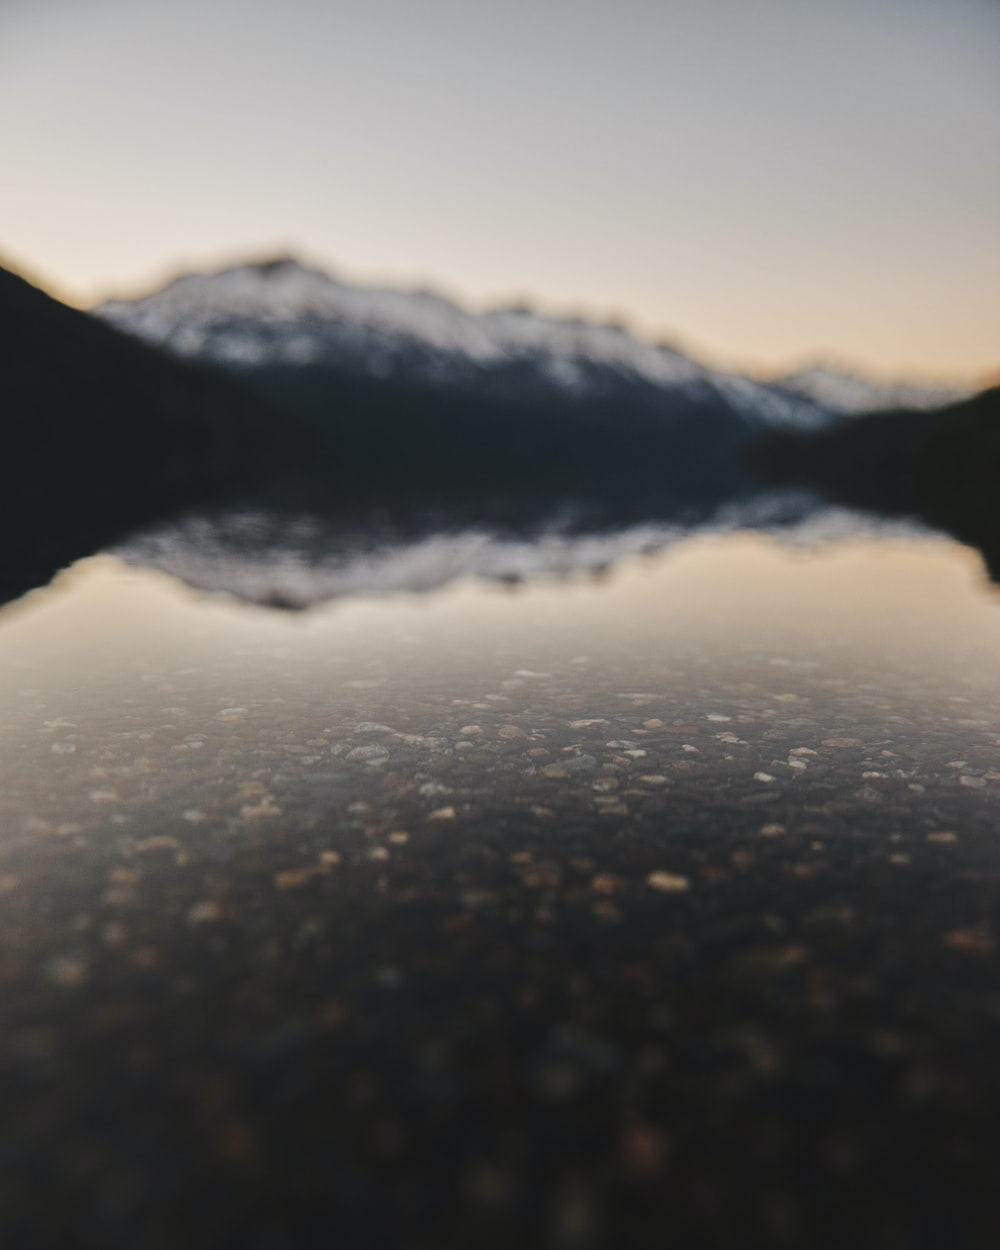 panoramic photography of mountain reflecting on water